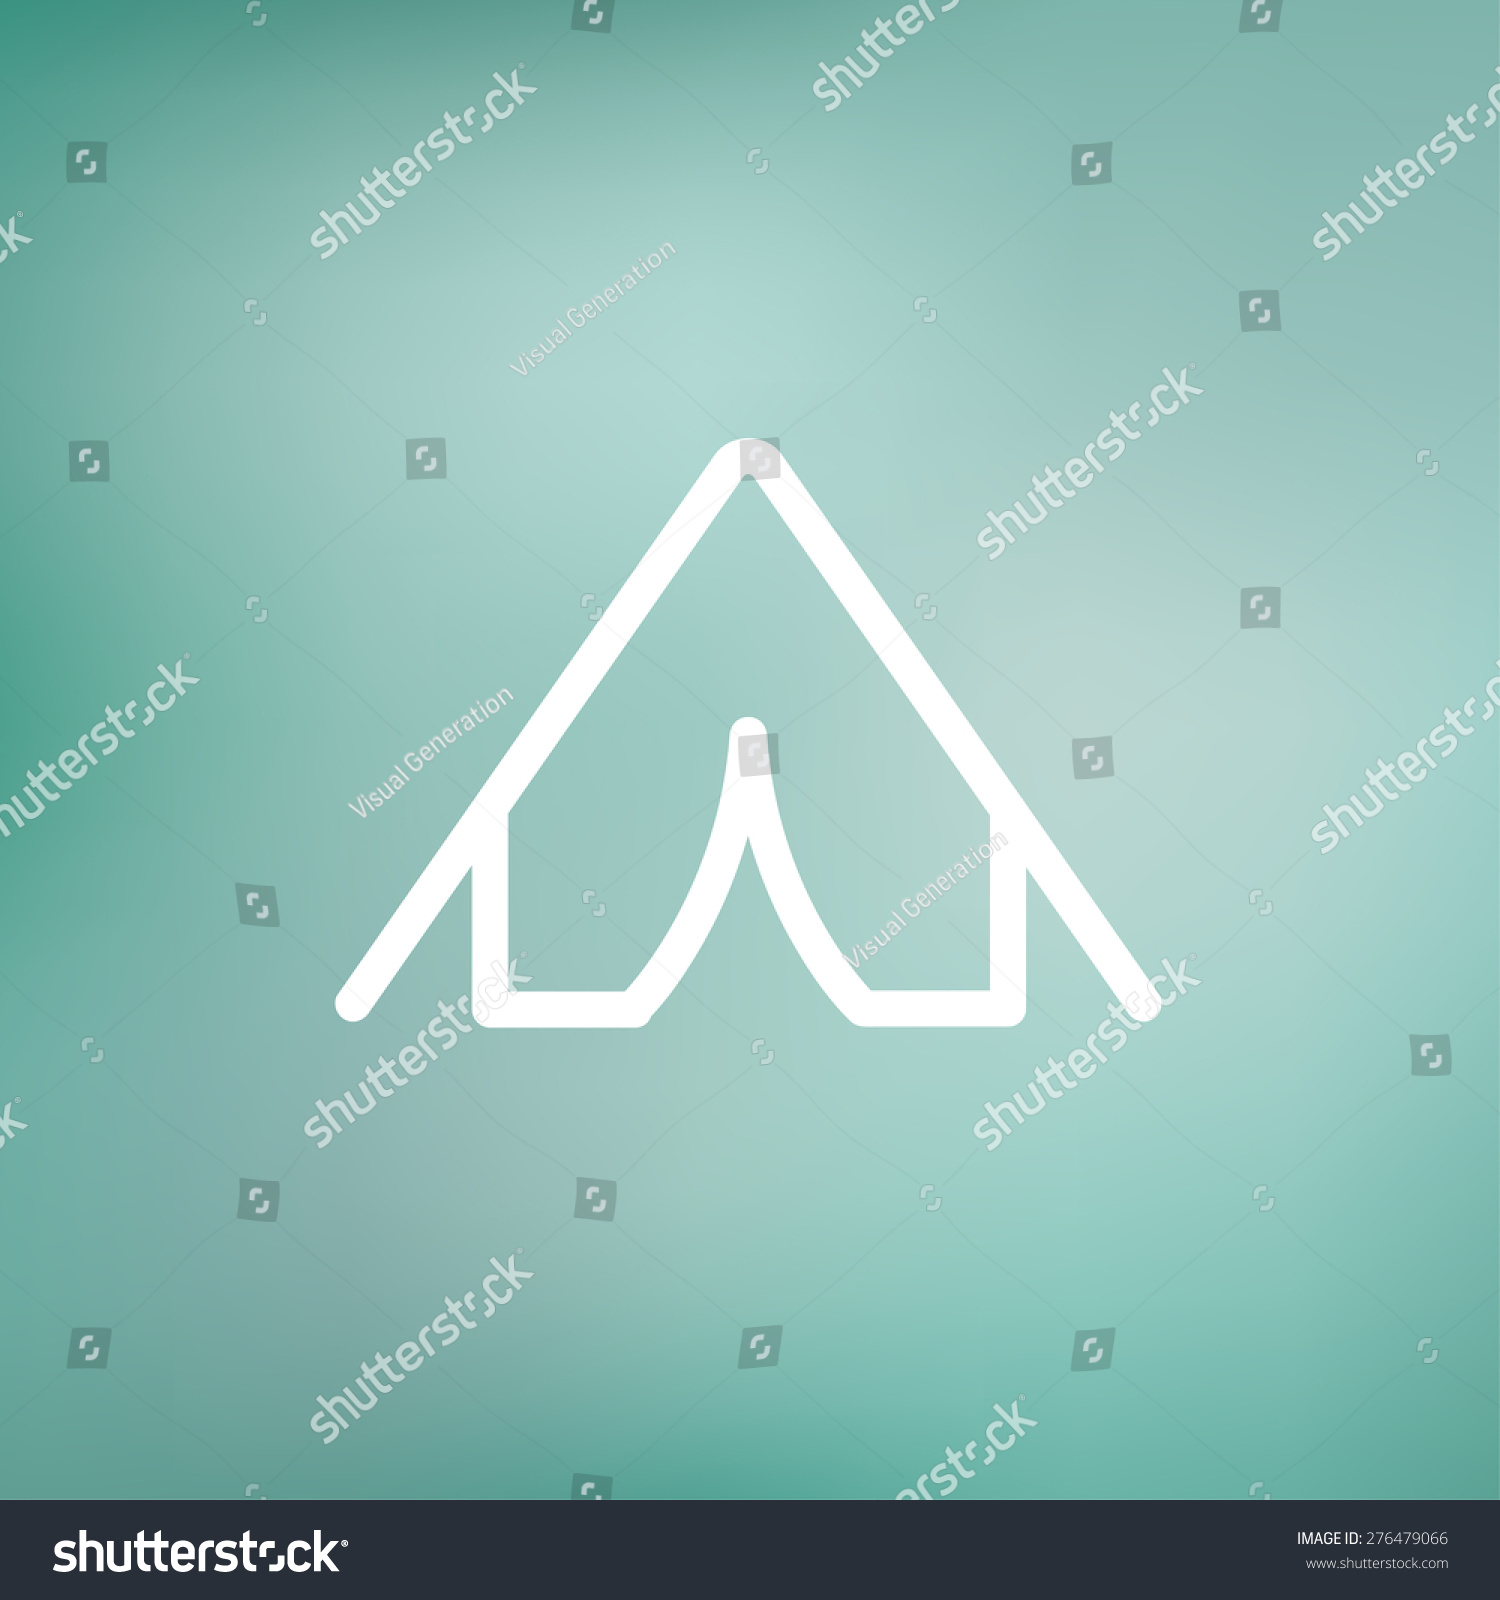 Tent icon thin line for web and mobile modern minimalistic flat design. Vector white & Tent Icon Thin Line Web Mobile Stock Vector 276479066 - Shutterstock